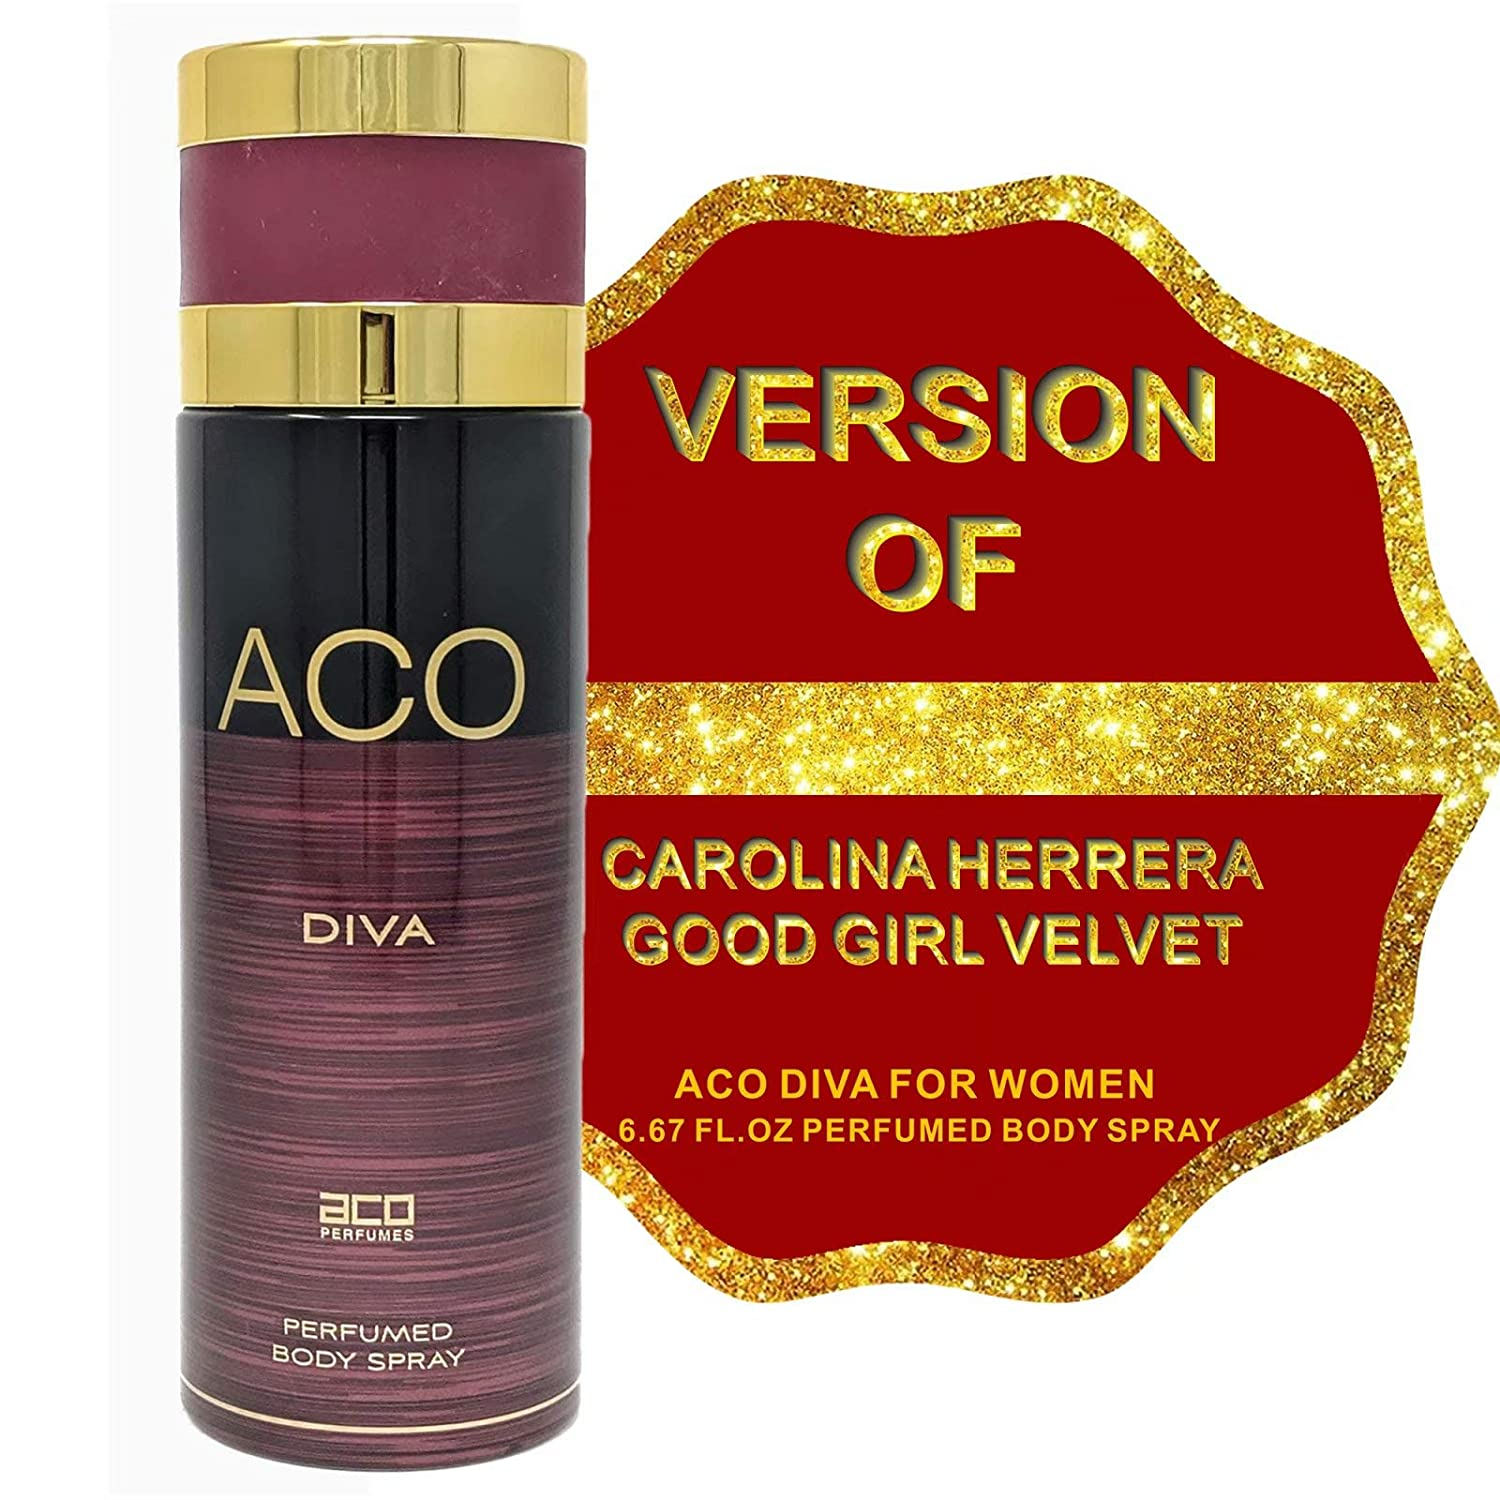 ACO DIVA Deodorant Body Spray for Women, Light Floral Scent Body Mist Spray Sensual Fragrance, Gift for Holidays, for all Skin Types and Daily Use, 6.67 Fluid Ounce